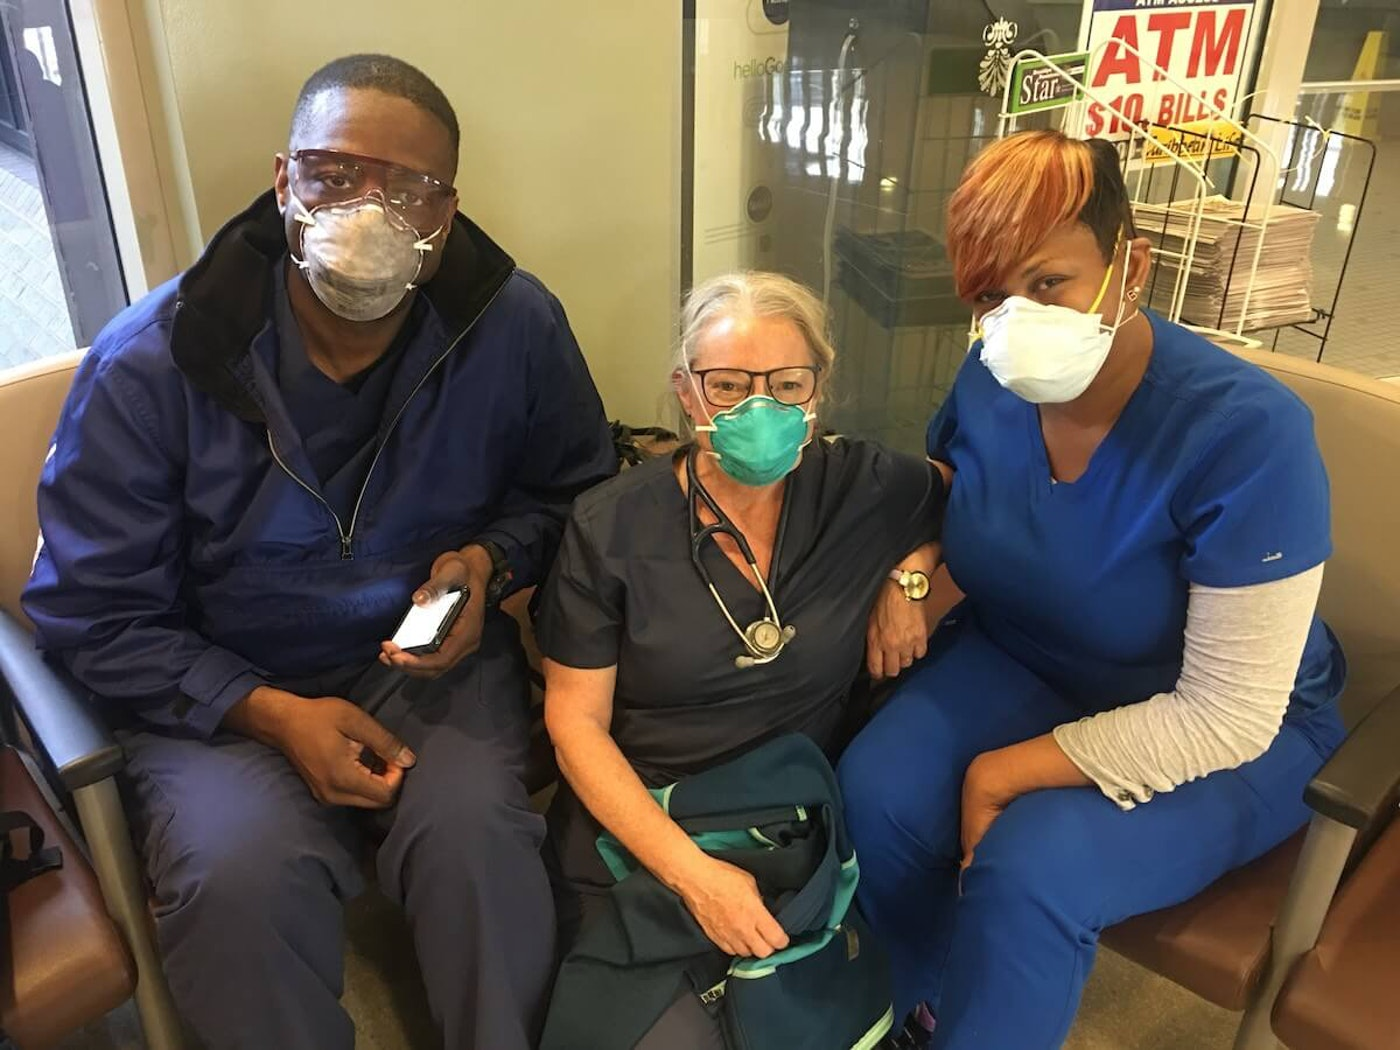 """Wisconsin nurse Elizabeth """"Buffy"""" Riley, center, sits with fellow nurses Dee Wells, left, and Benita Conleh, right, in New York in early April. Riley, who lives in Hayward and works in Cumberland, is spending three weeks in New York treating people hospitalized with COVID-19. (Contributed photo)"""